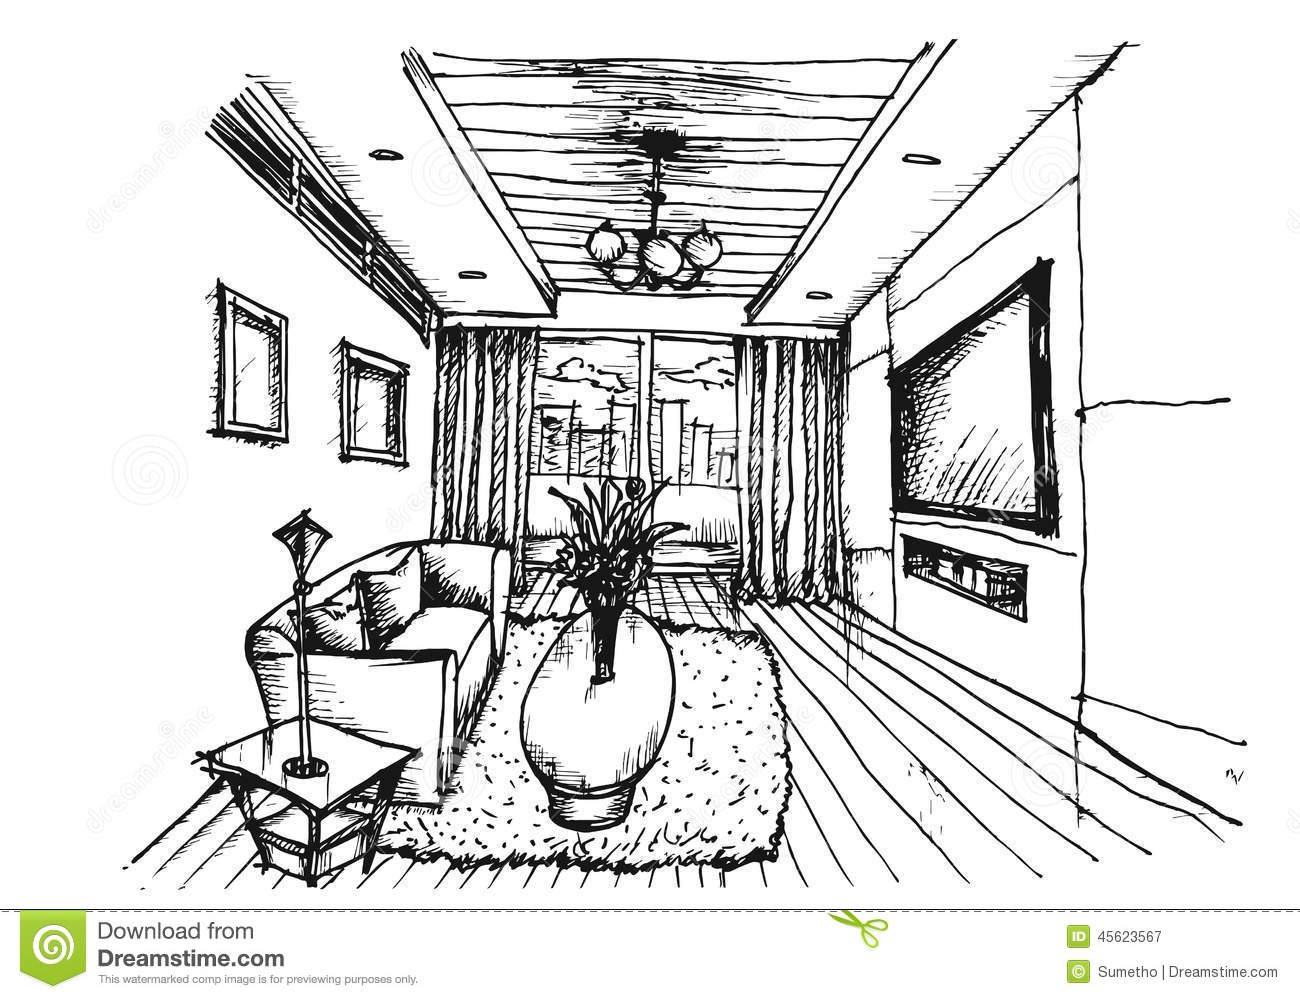 Living Room Drawing Design - Design drawing hand interior living room